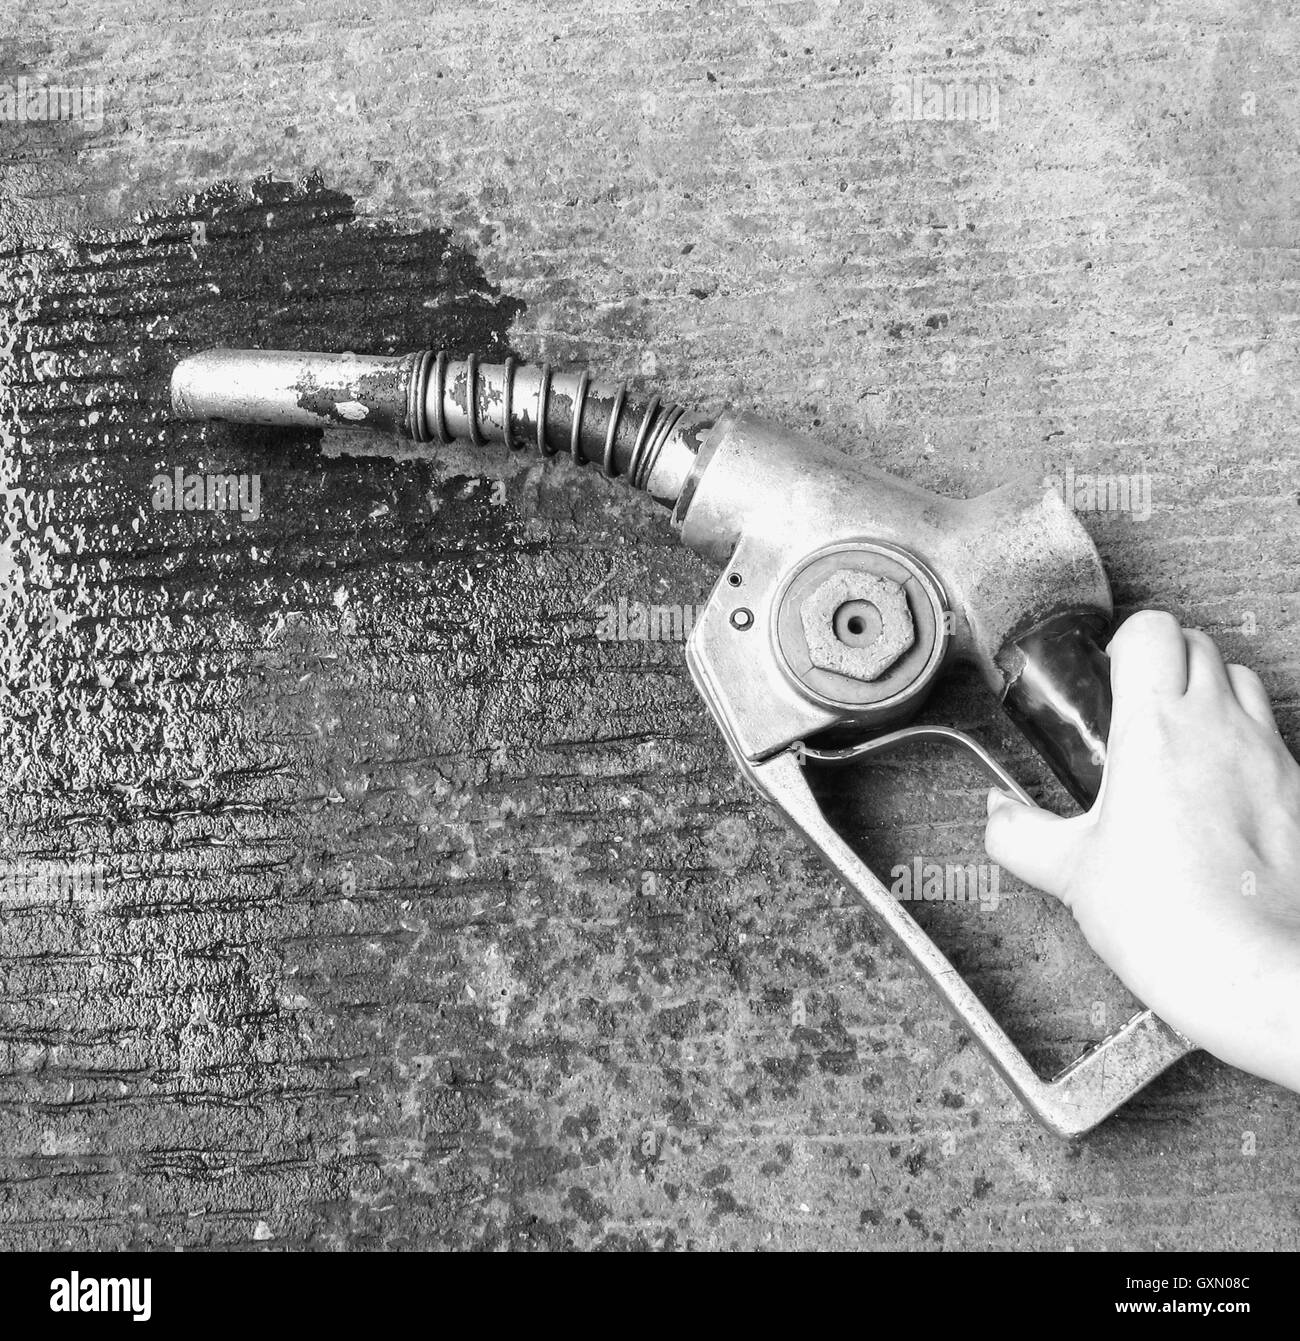 Hand holding old gas pump, oil wasting on the ground.(Black and white effect) - Stock Image